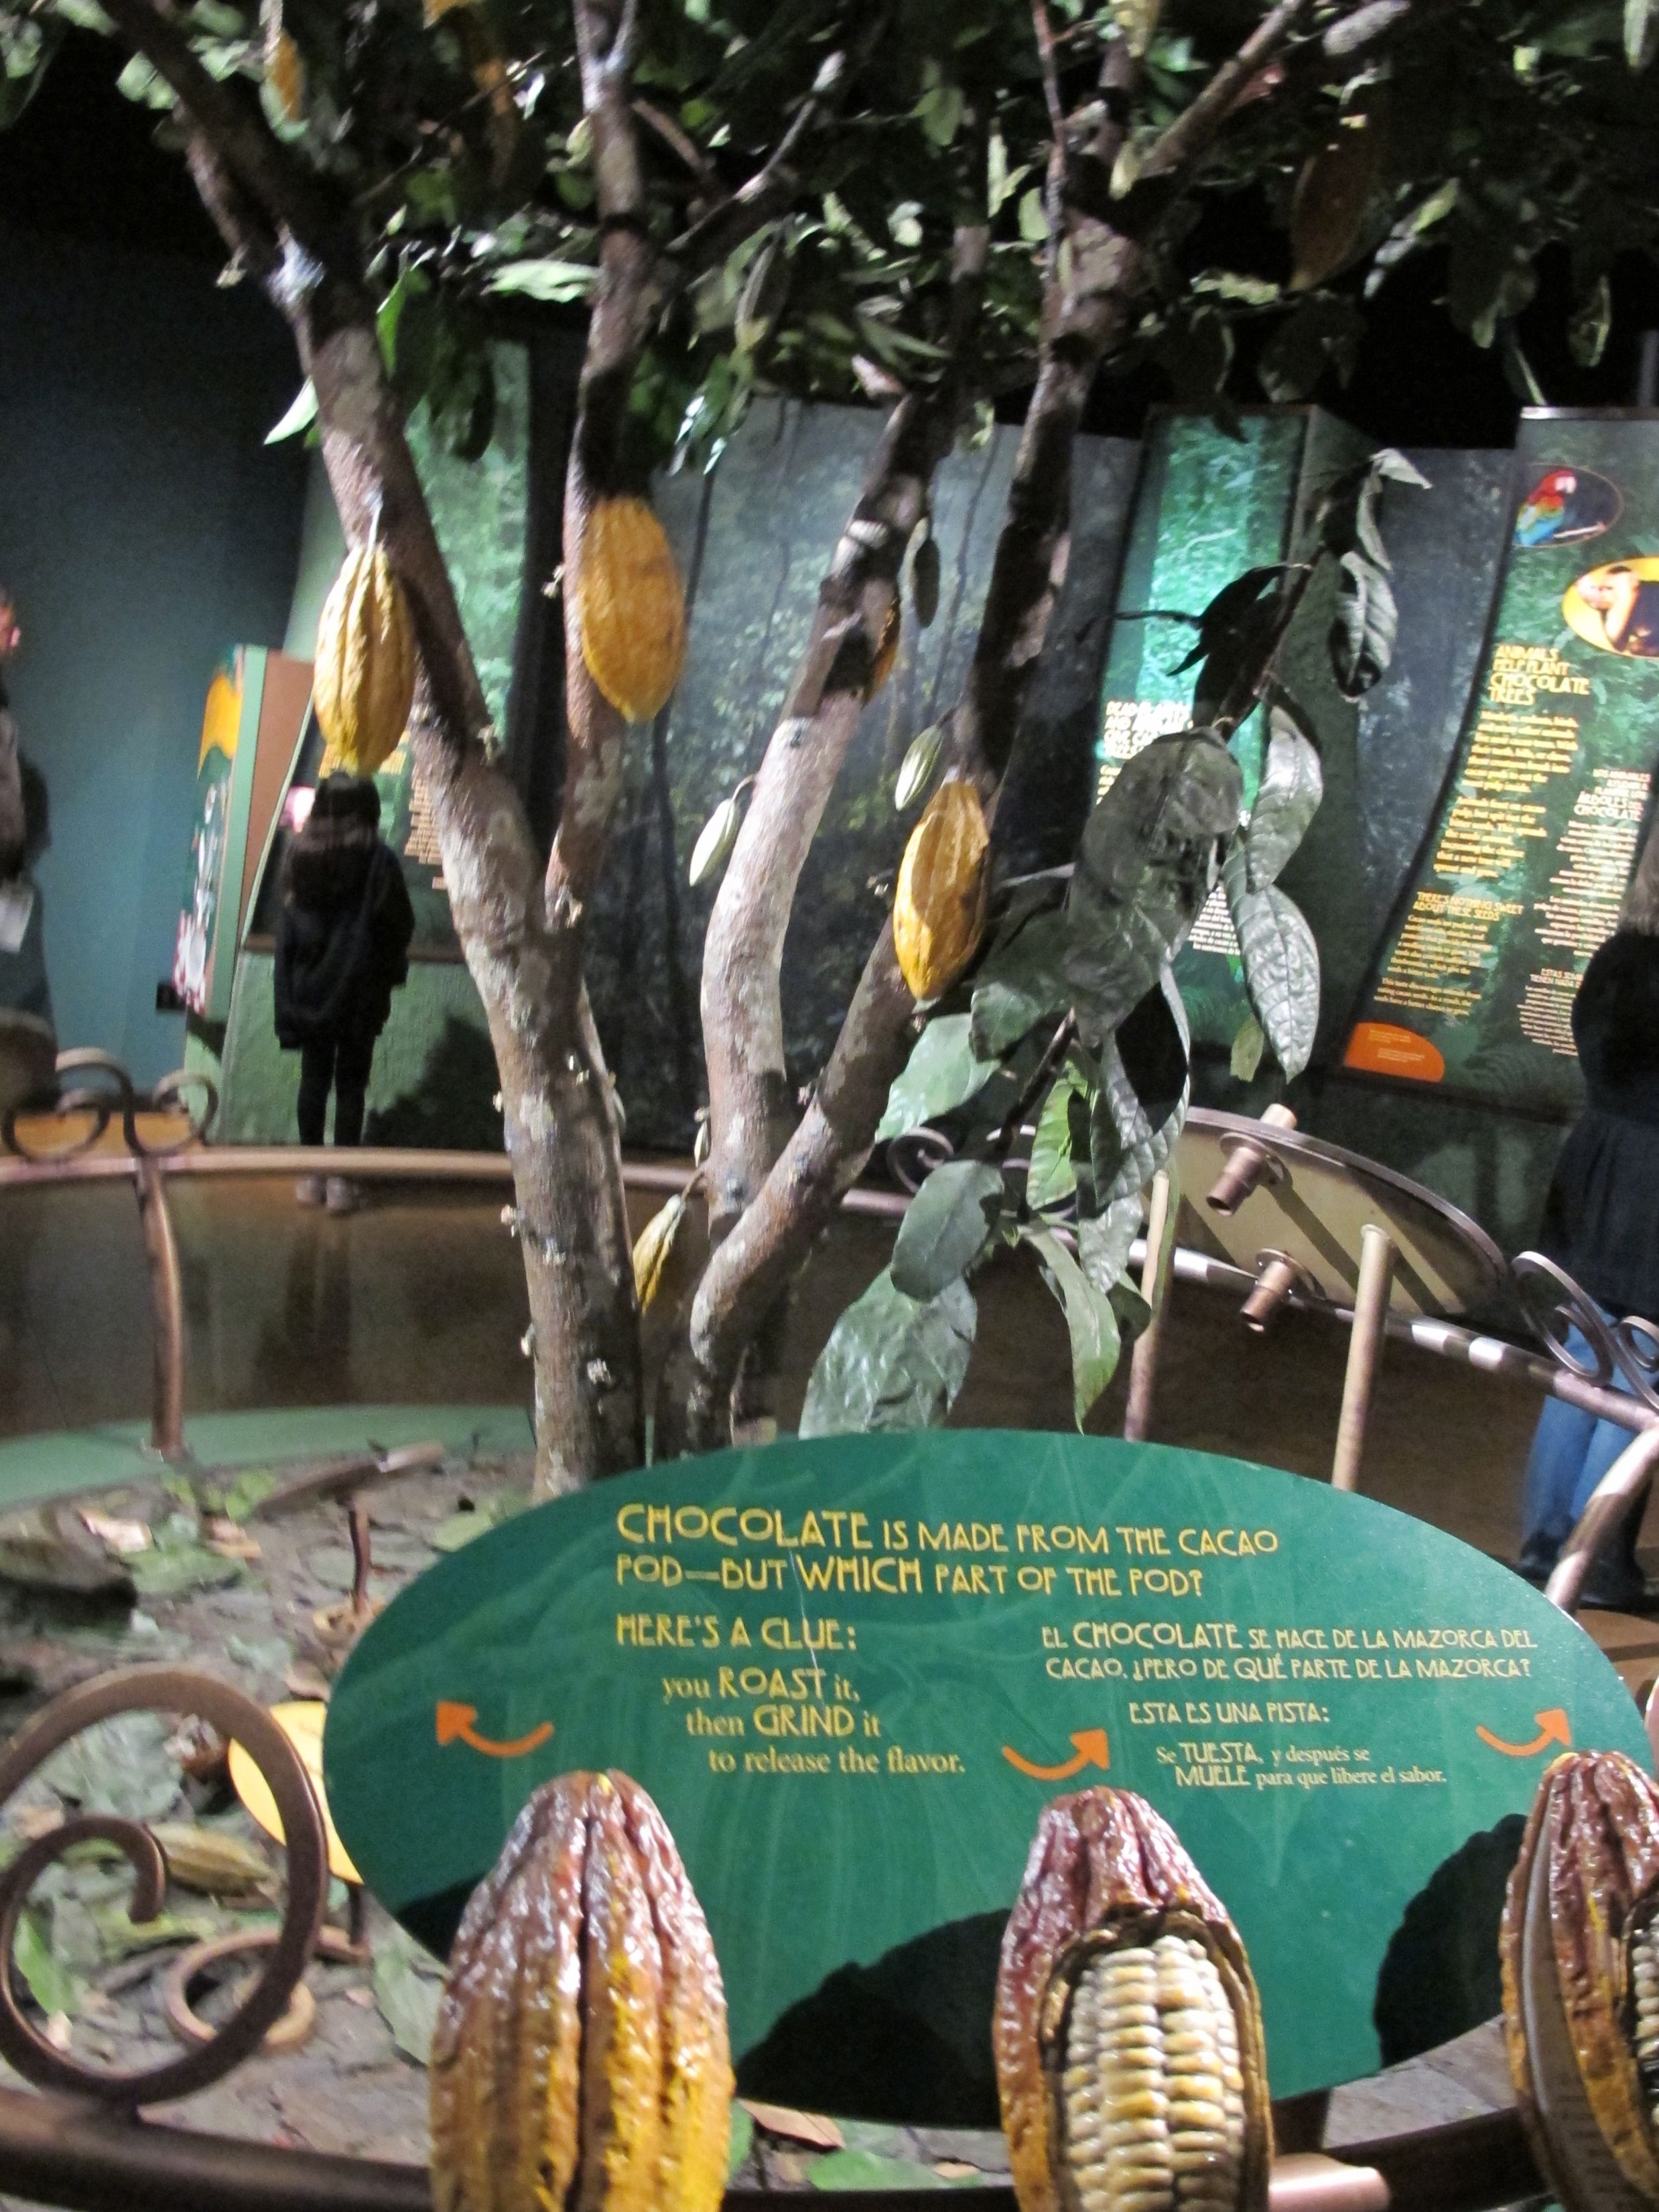 This shows how cacao pods (the source of the seeds from which chocolate is made) grow on the tree.